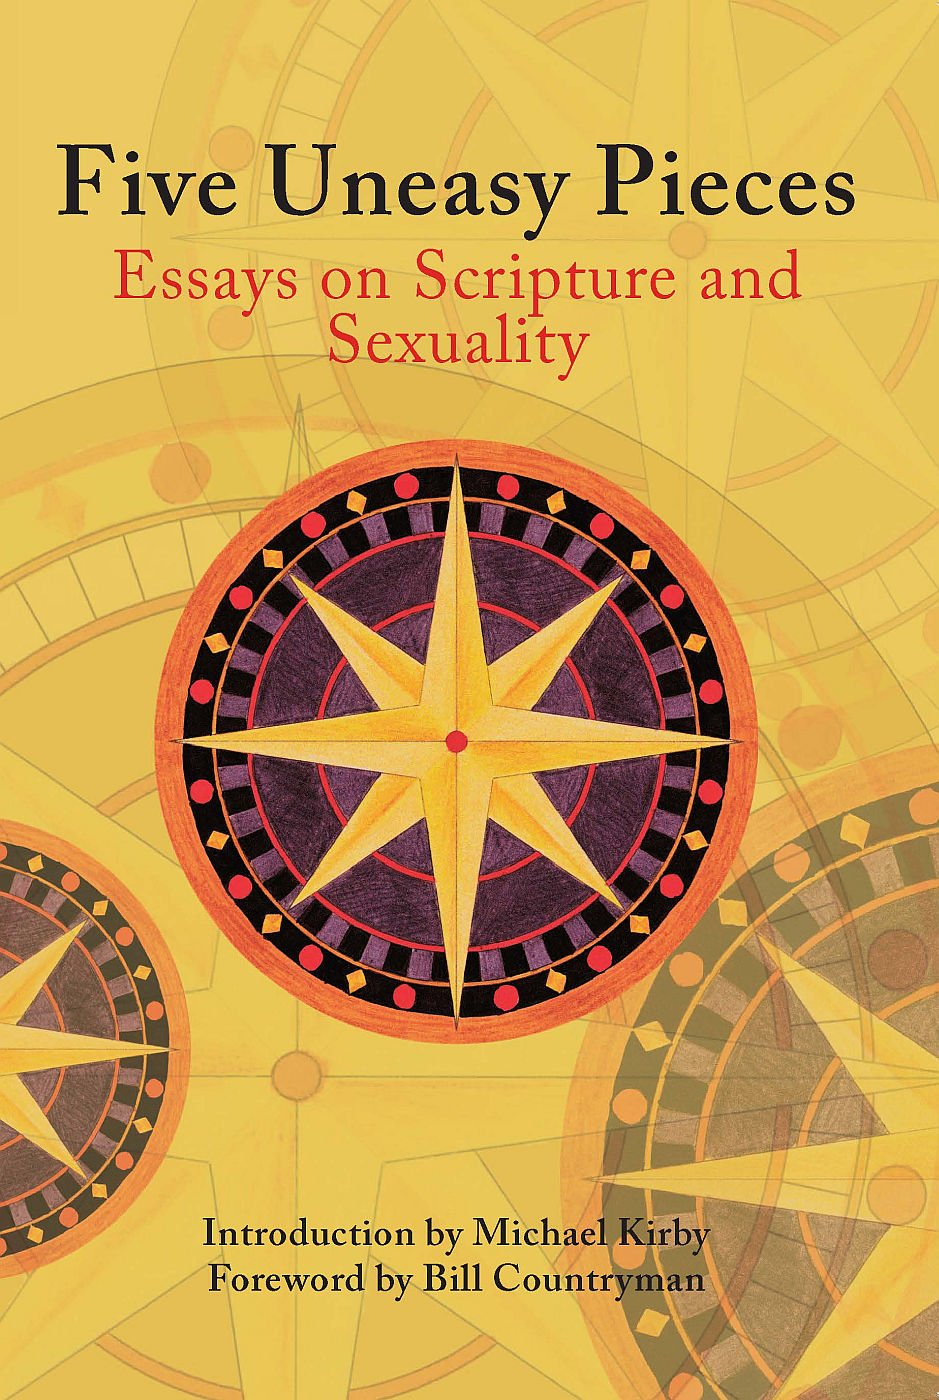 five uneasy pieces essays on scripture and sexuality michael five uneasy pieces essays on scripture and sexuality michael kirby 9781921817243 com books